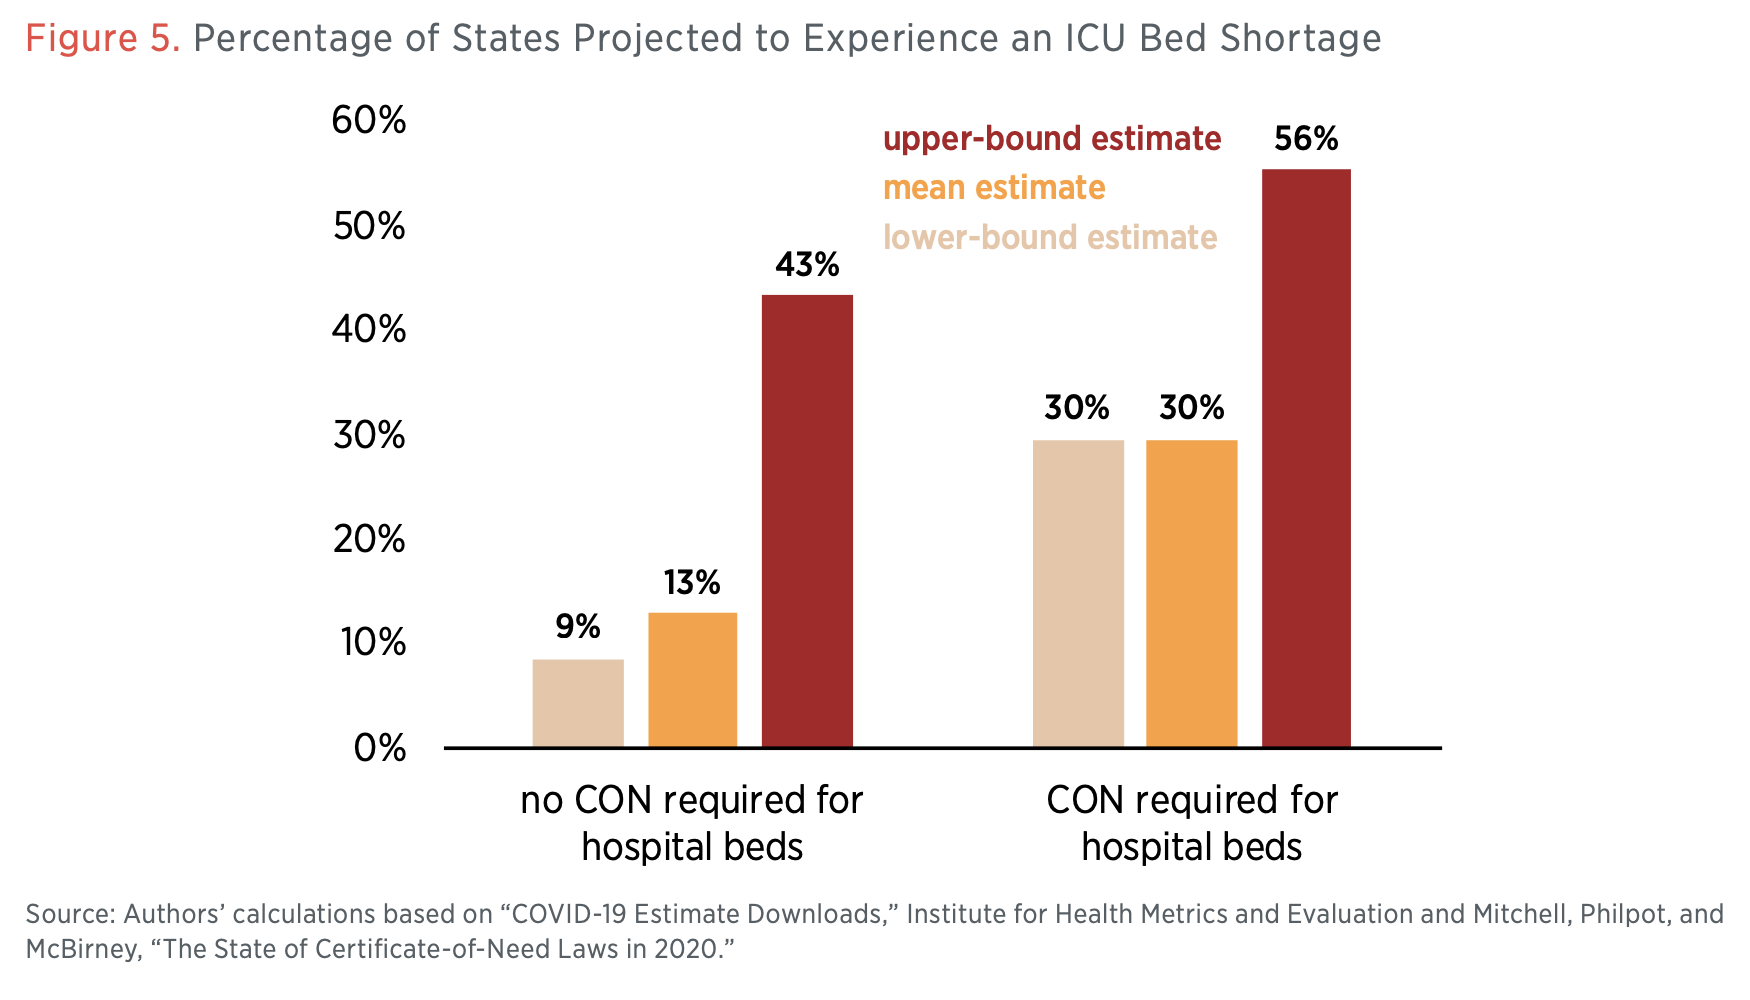 Figure 5. Percentage of States Projected to Experience an ICU Bed Shortage